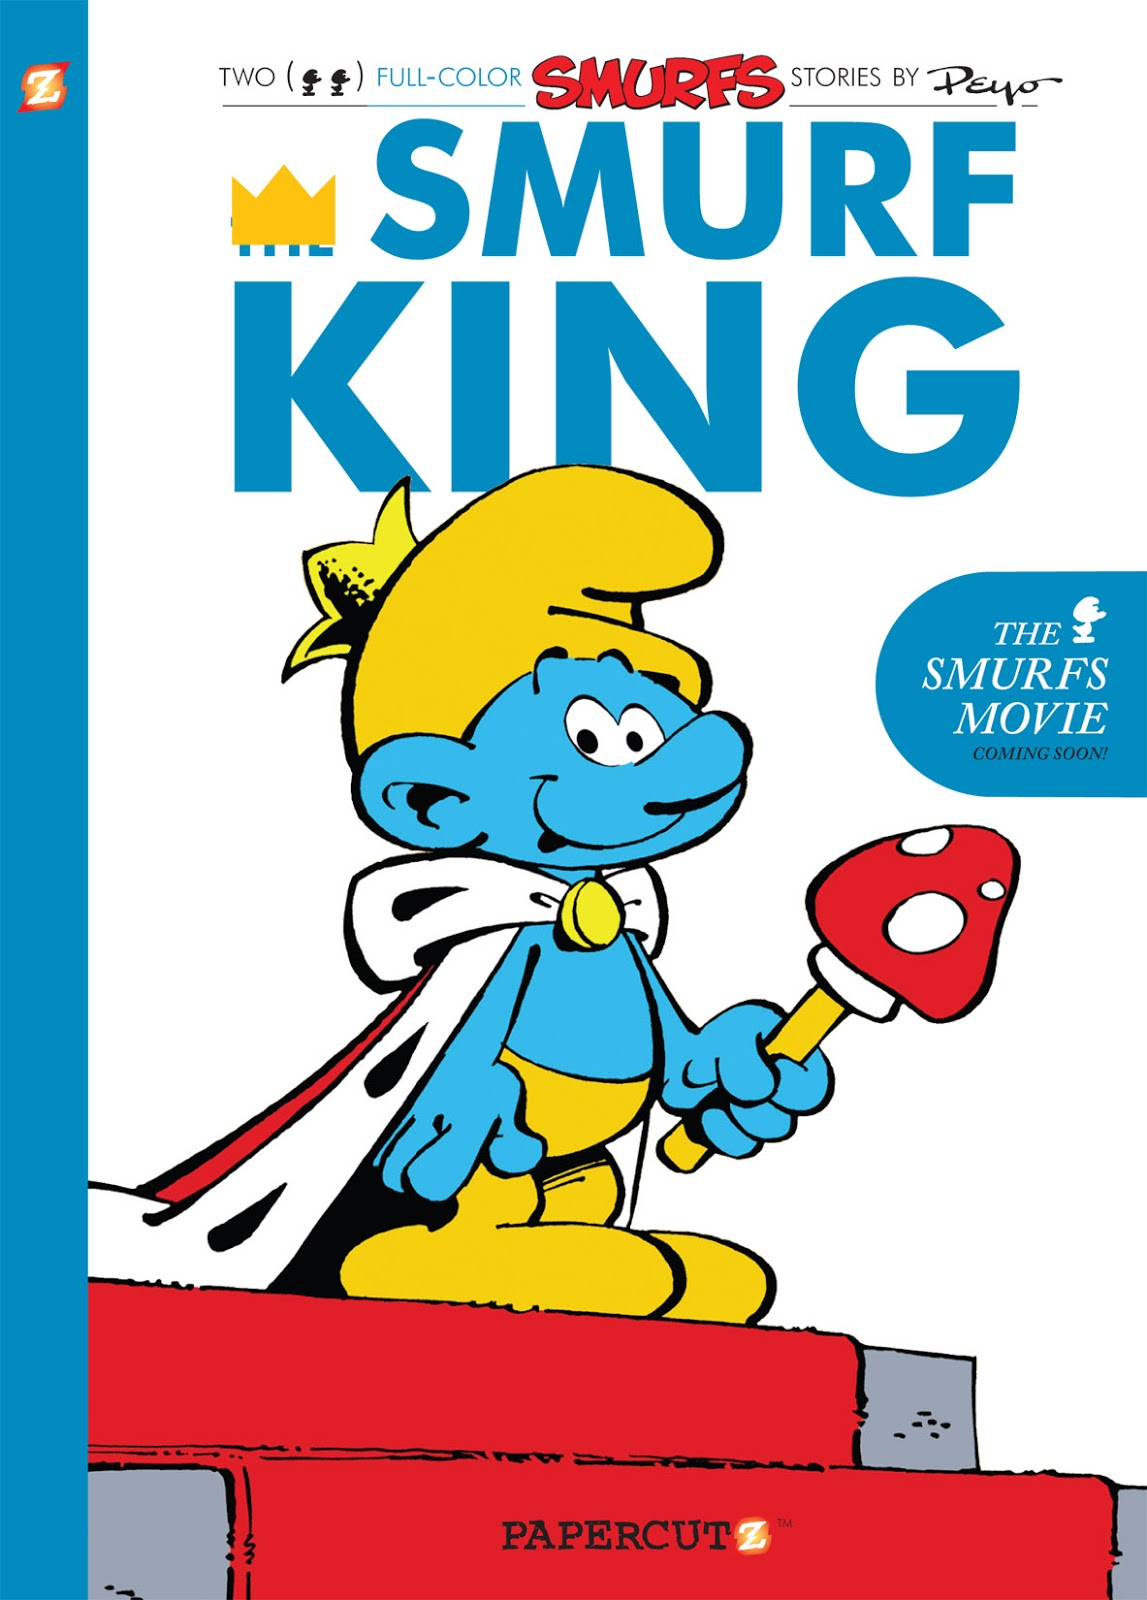 Smurf King cover